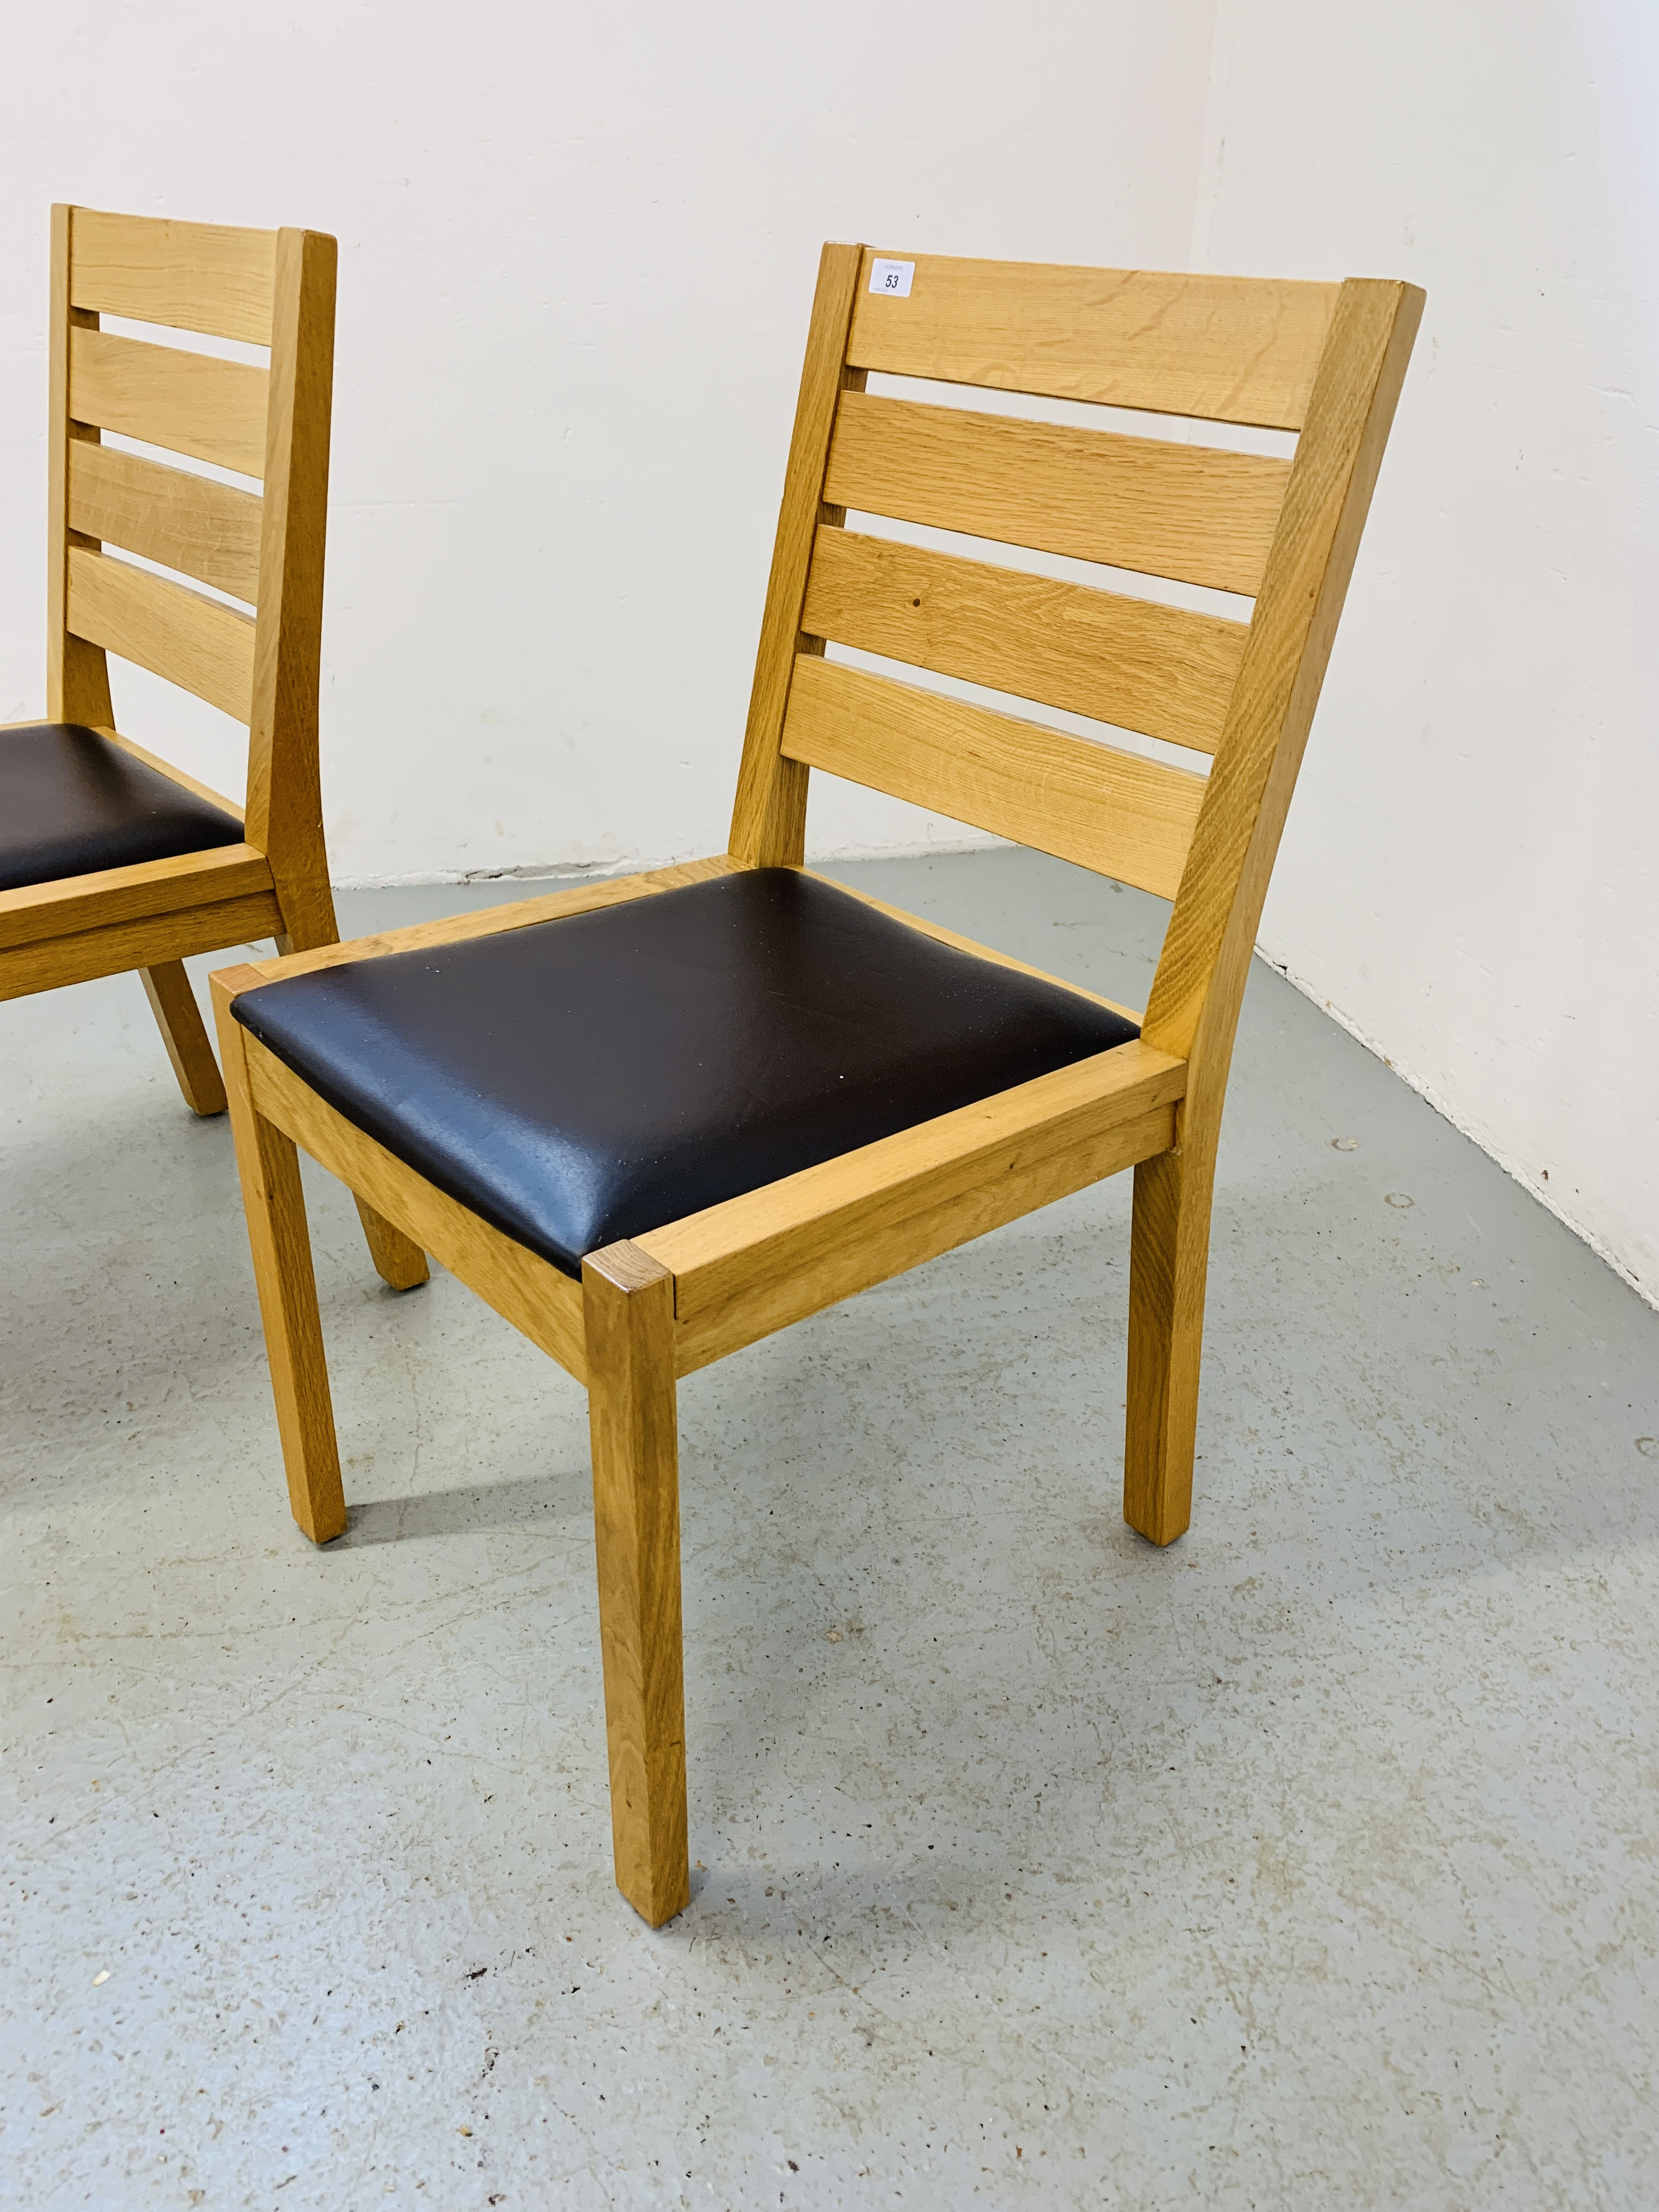 A PAIR OF LIGHT OAK MODERN SIDE CHAIRS - Image 3 of 9